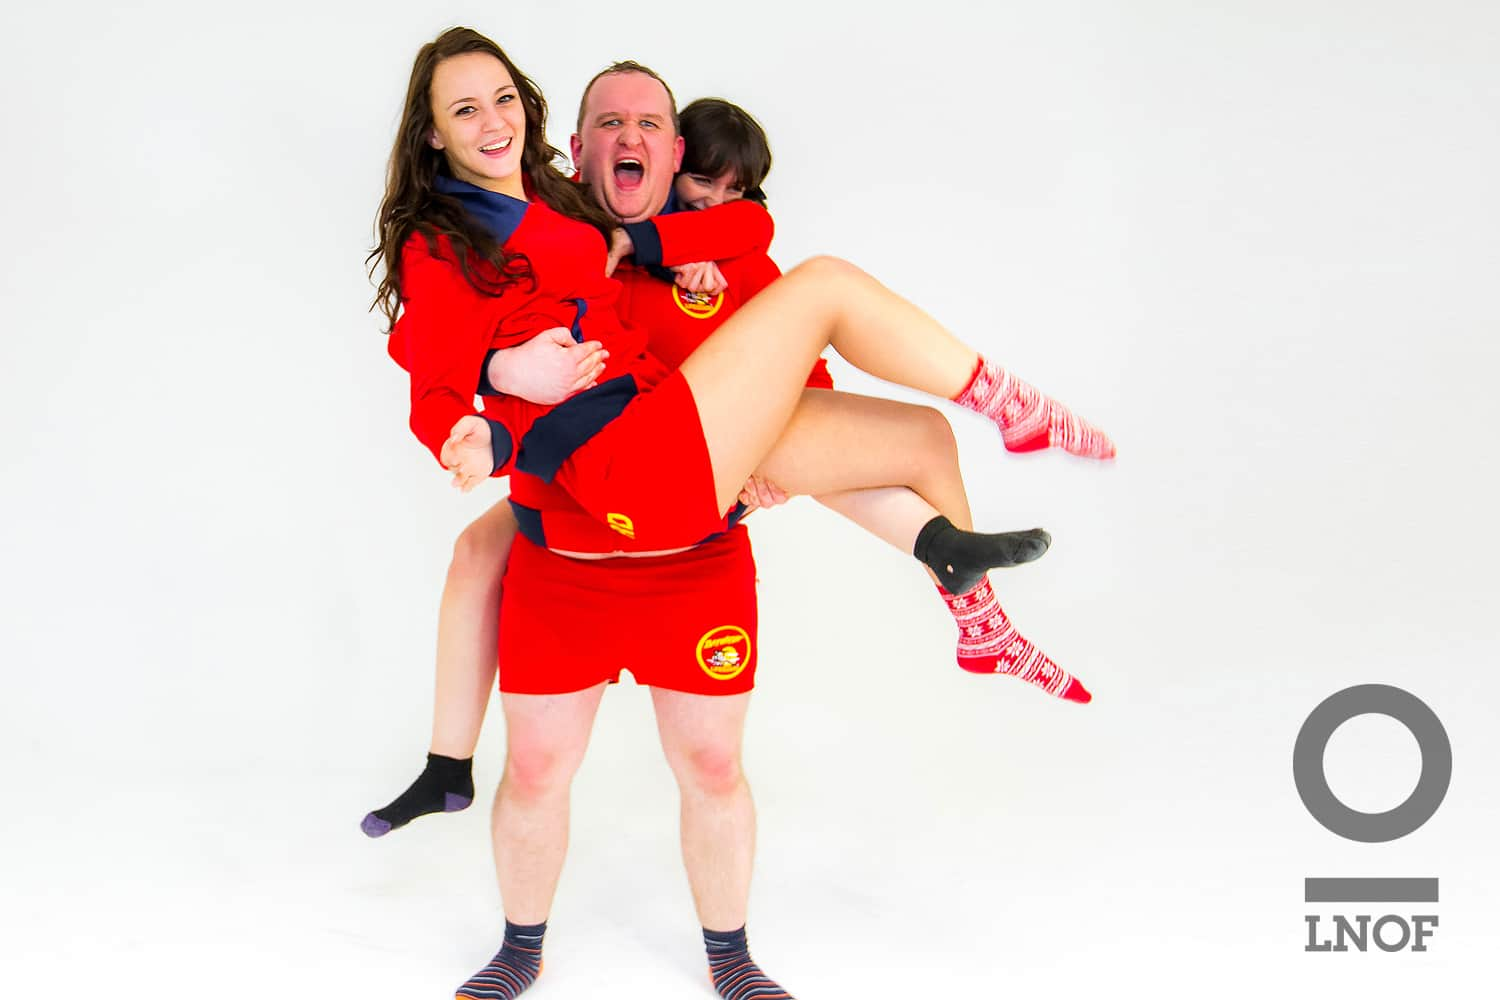 Andrew from sales shows the lifeguard strength in carrying two colleagues to safety